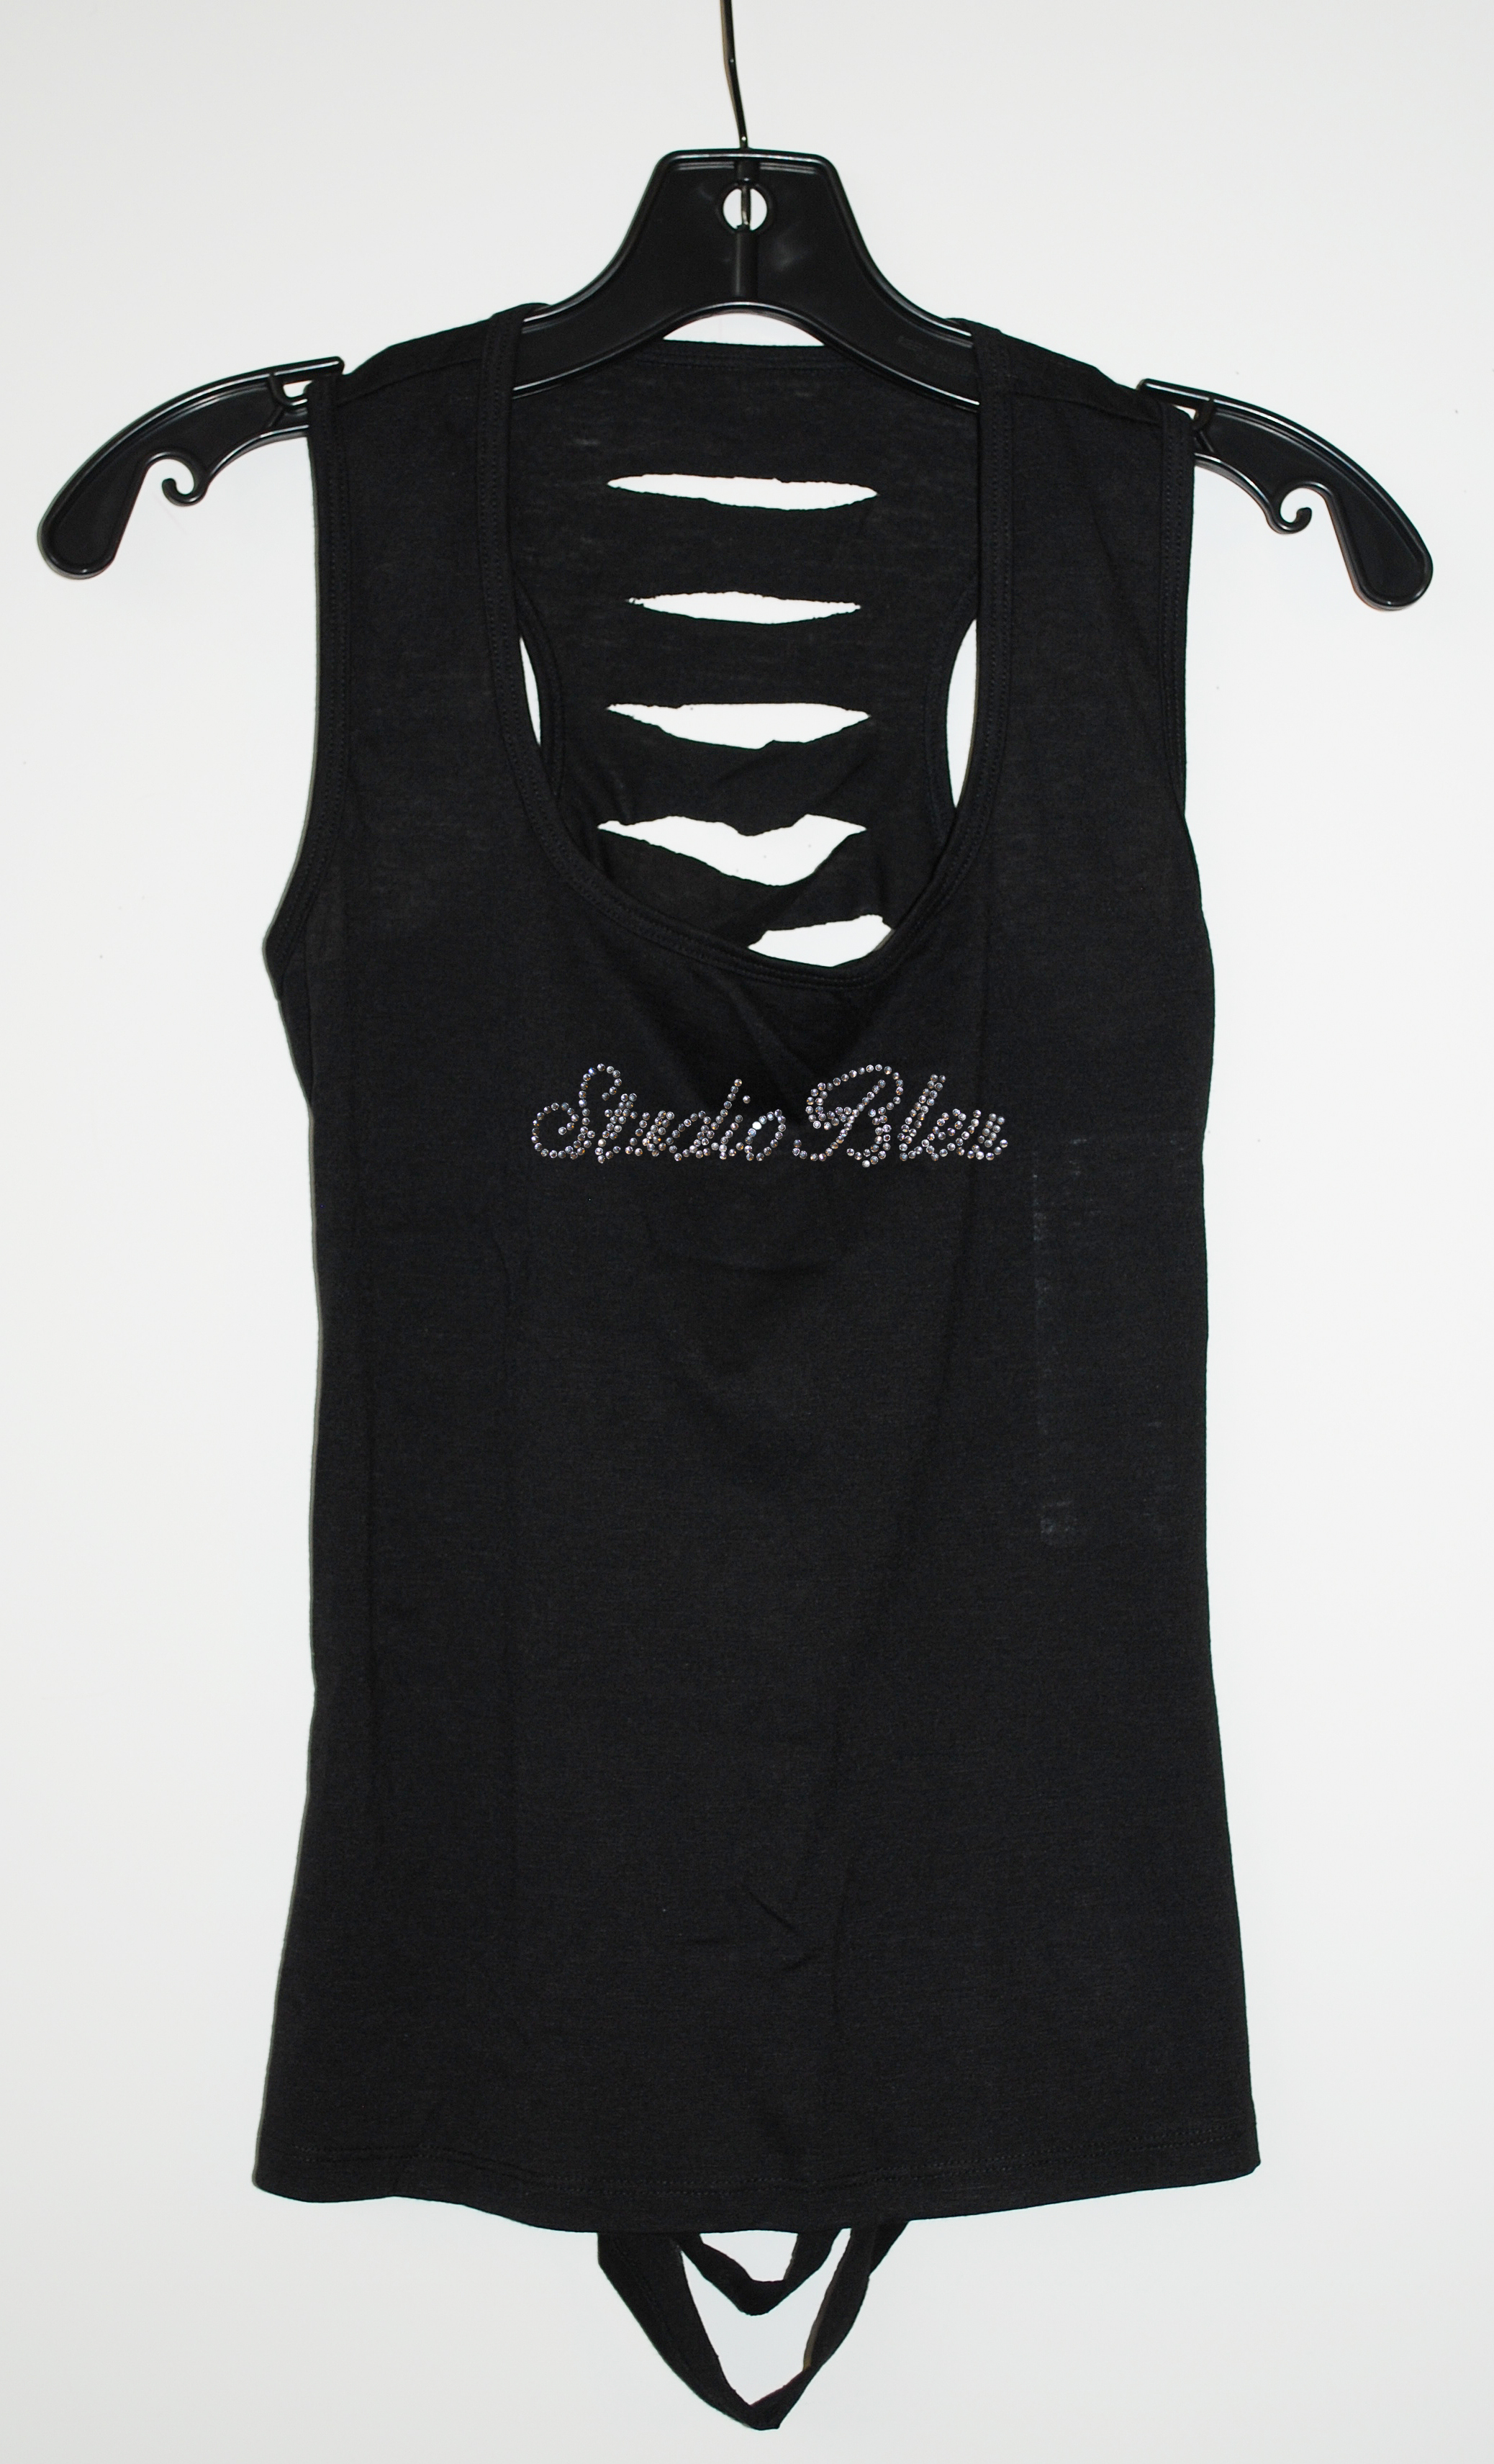 31 Slashed back tee front view stones.jpg